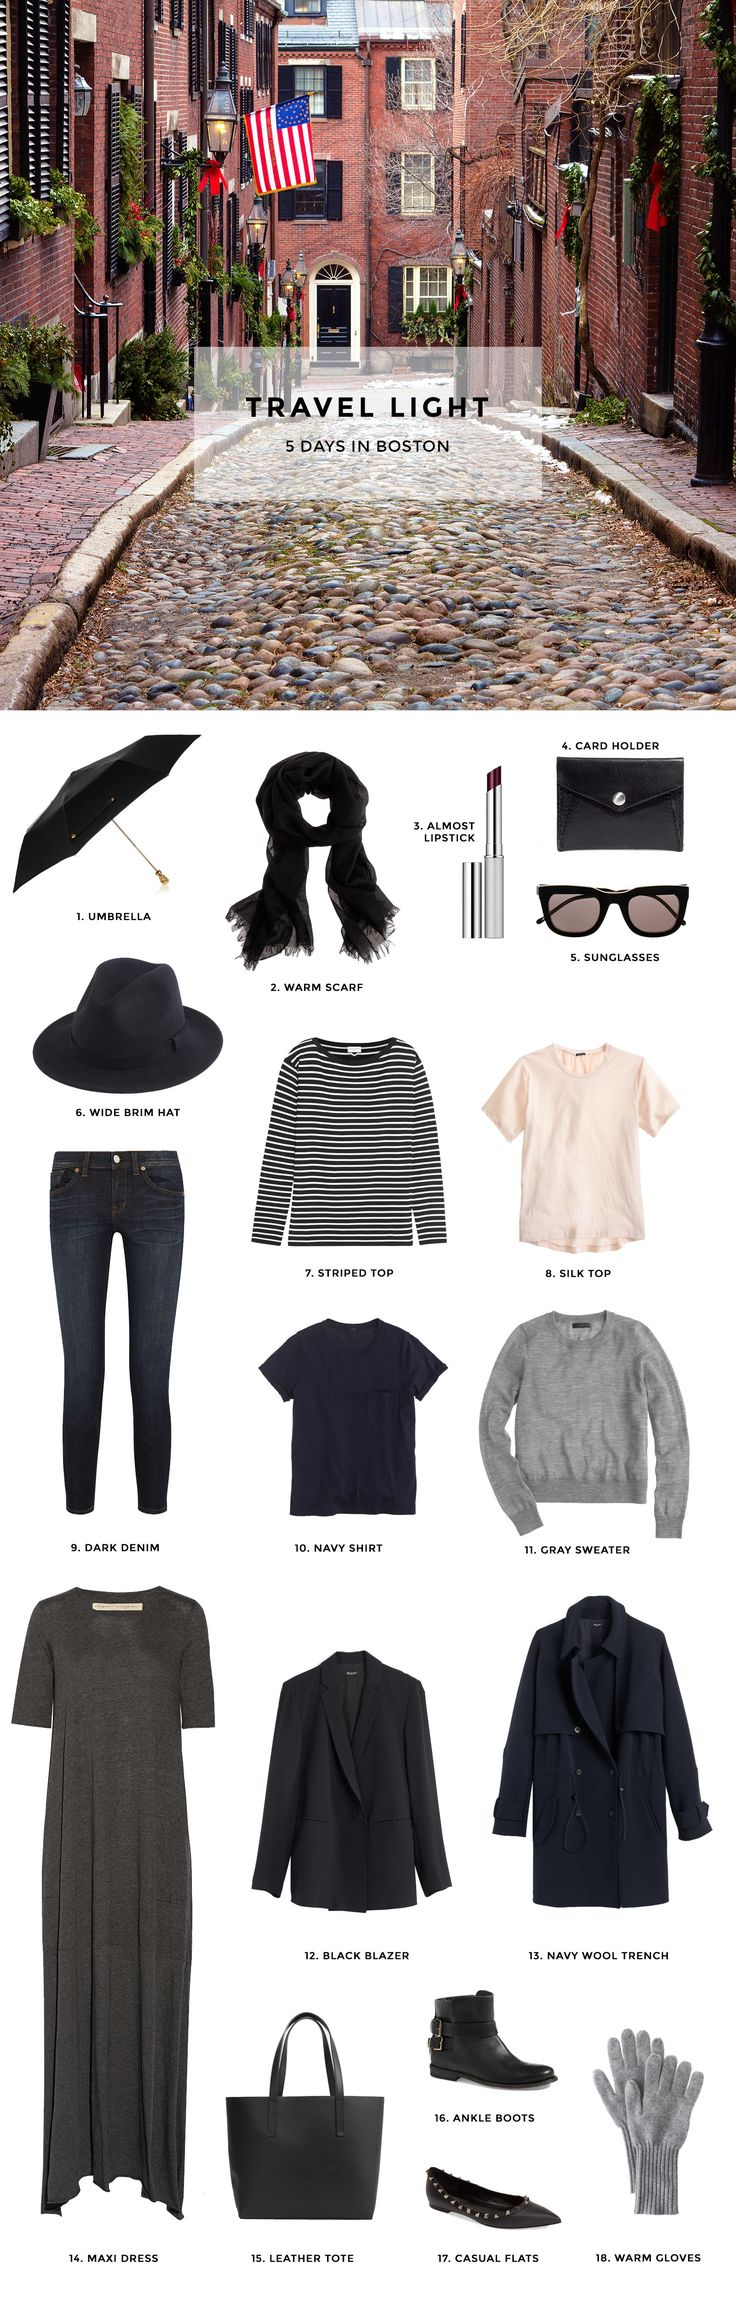 The weather is always changing in the springtime--these wardrobe ideas will help you be ready for anything prepare for weather change! Mix and match your pieces, add pop with an accessory, and you're set.! #Dressforsuccess #lookgoodfeelgood